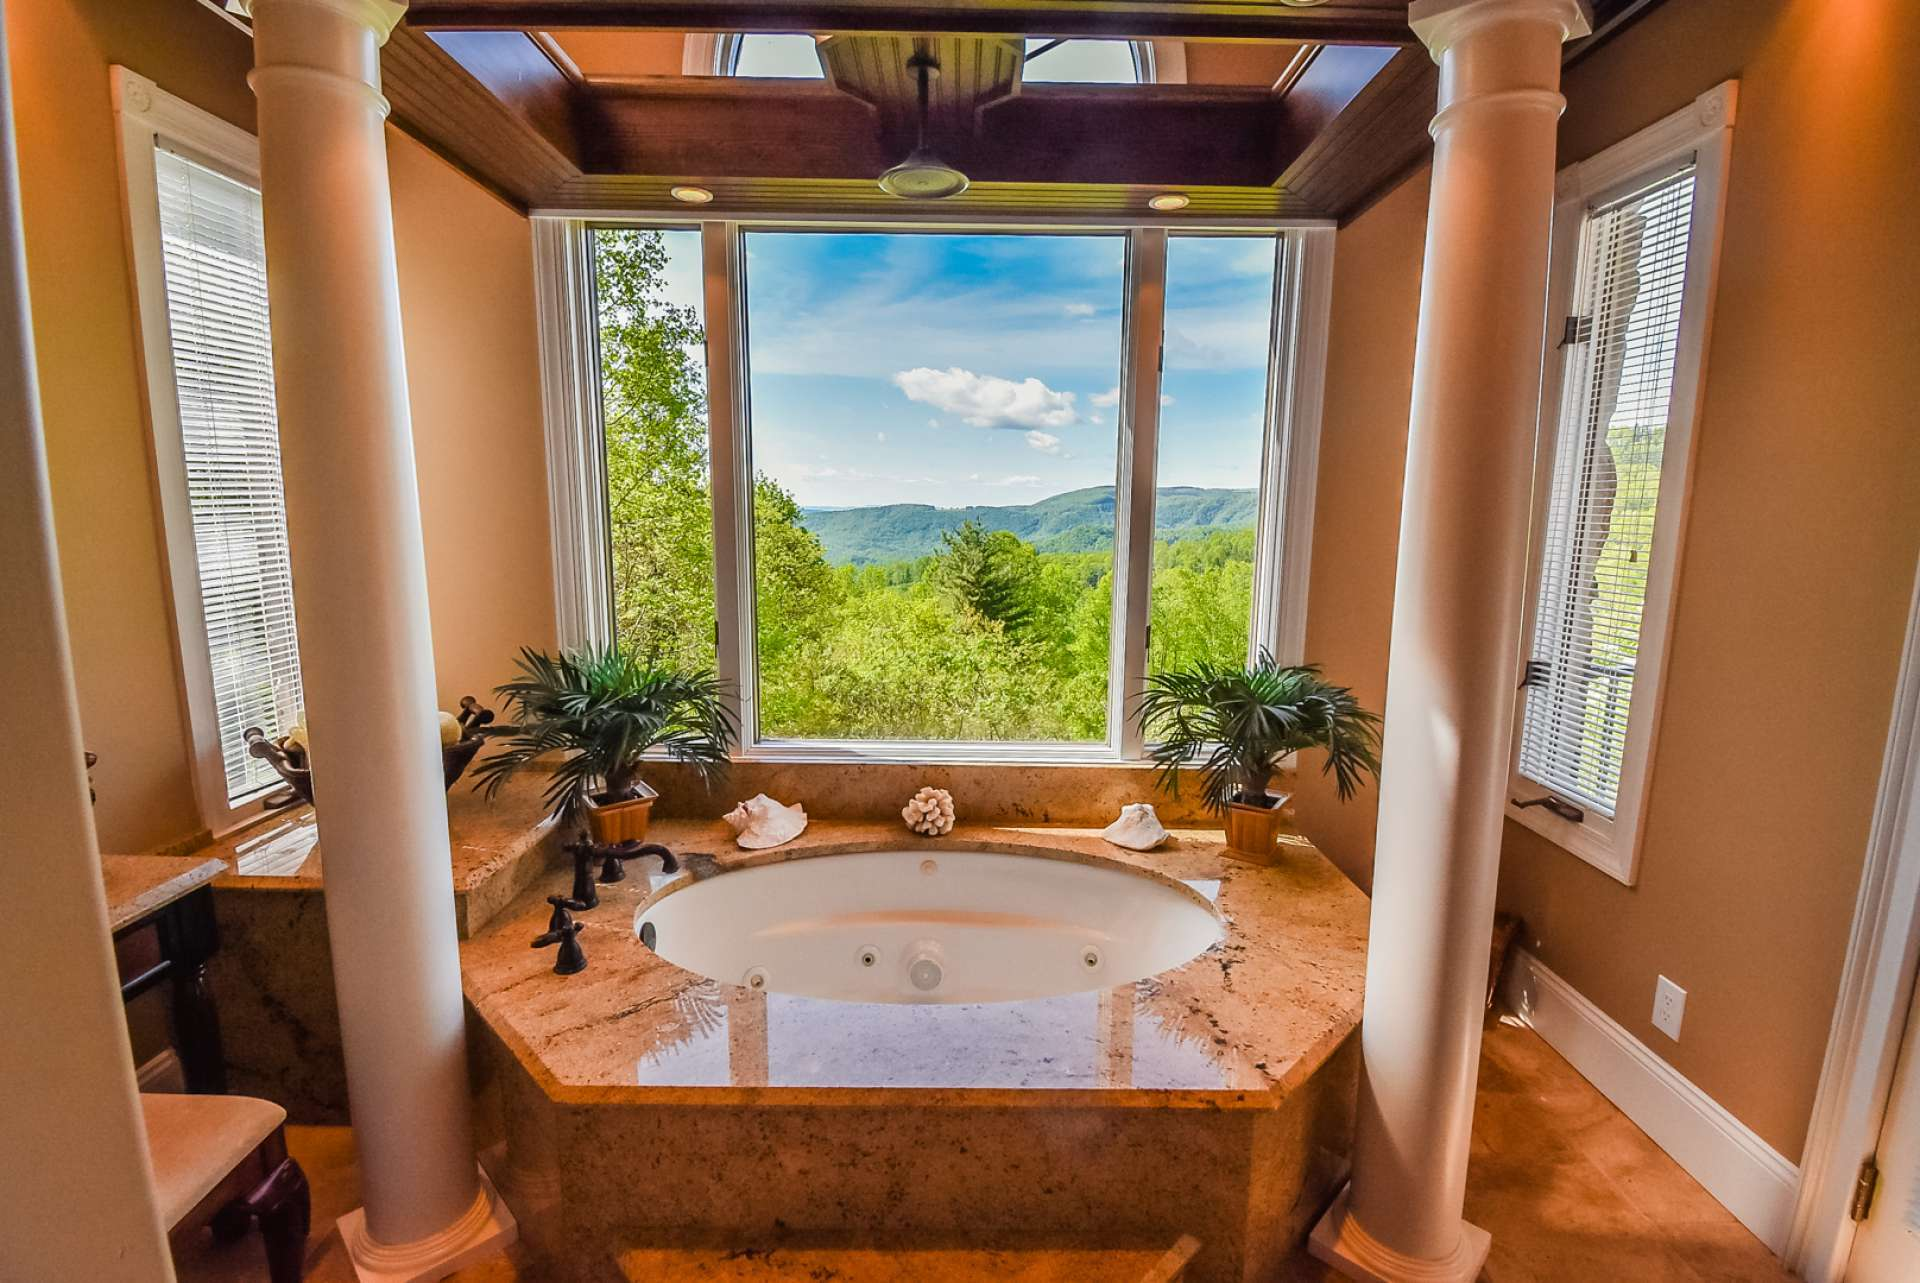 This luxurious master bath provides a spa-like experience with its jetted tub with rain shower head surrounded by stunning long range mountain views.